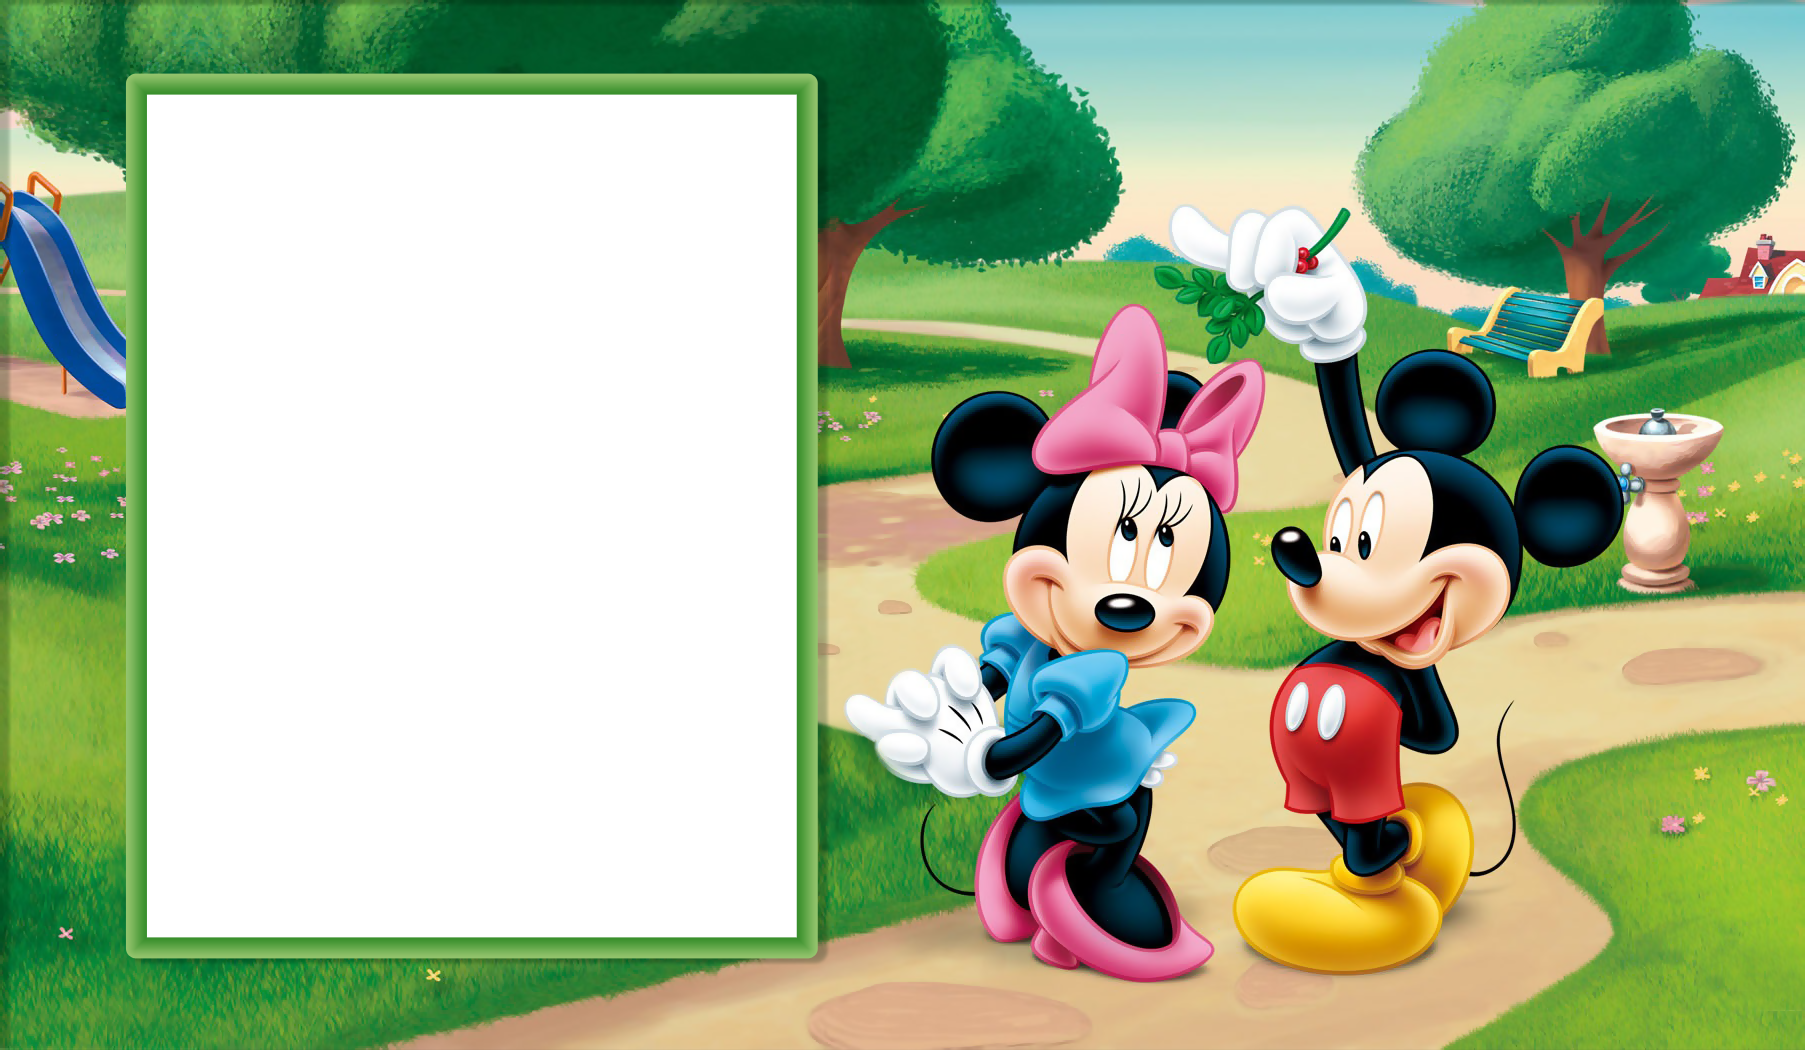 Christmas mickey clipart picture free stock Minnie and Mickey Mouse Transparent Kids Frame | Gallery ... picture free stock